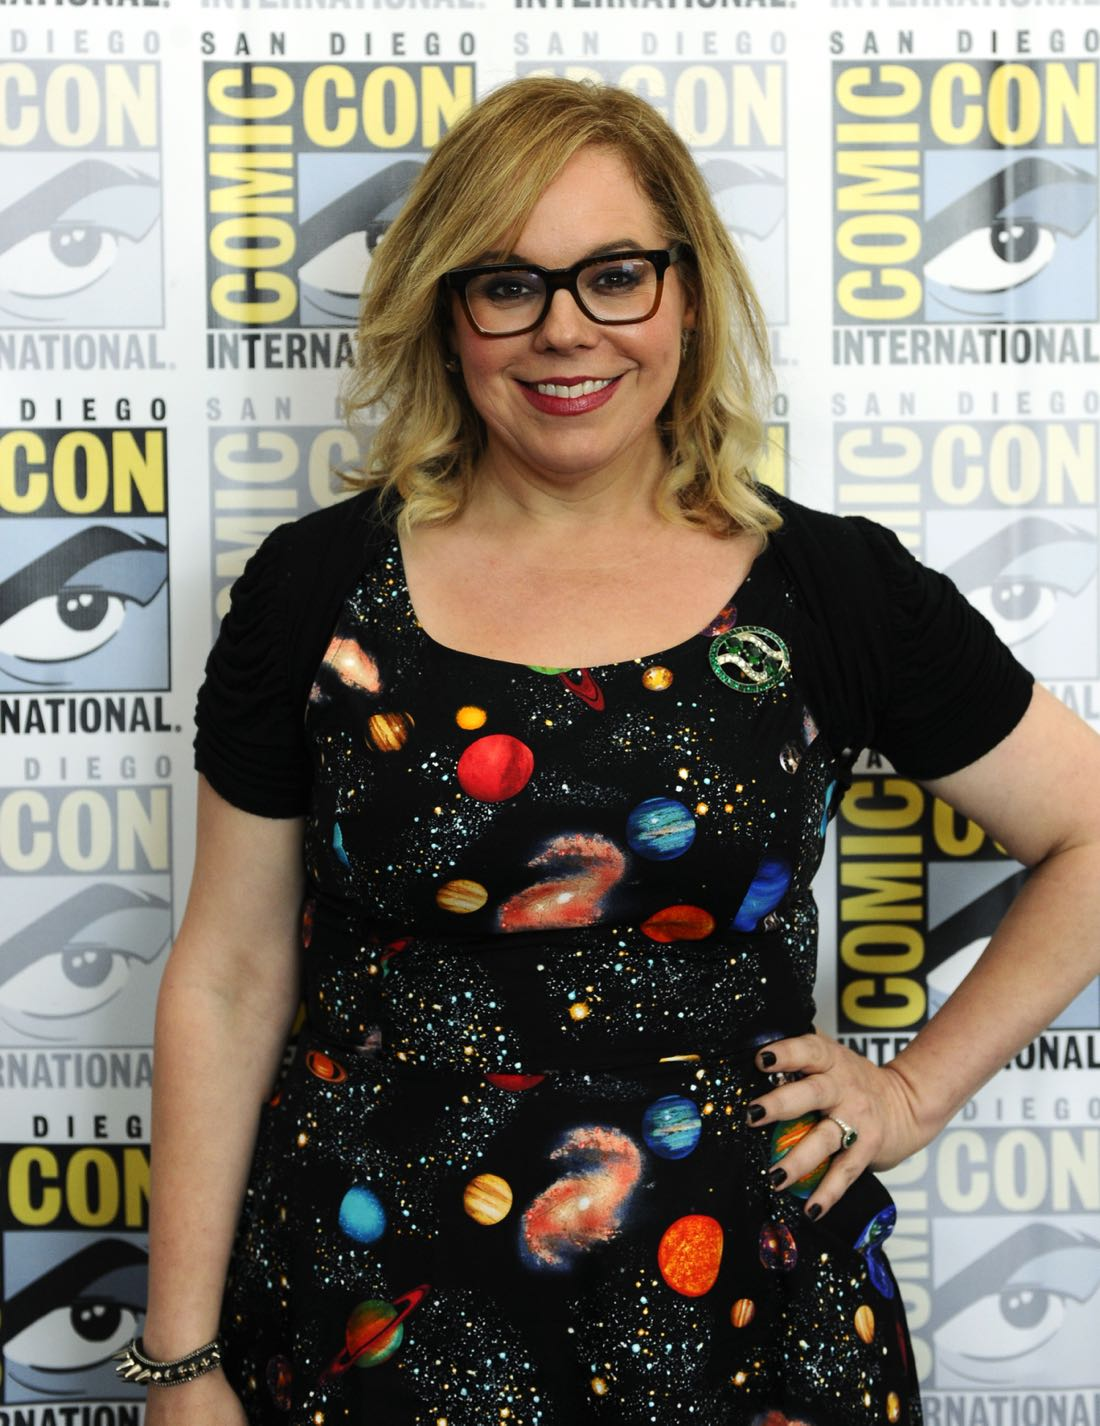 Kirsten Vangness goes live on Facebook with CBS Interactive at COMIC-CON® 2016 in San Diego, California. Photo: Johnny Vy/CBS ©2016 CBS Broadcasting, Inc. All Rights Reserved